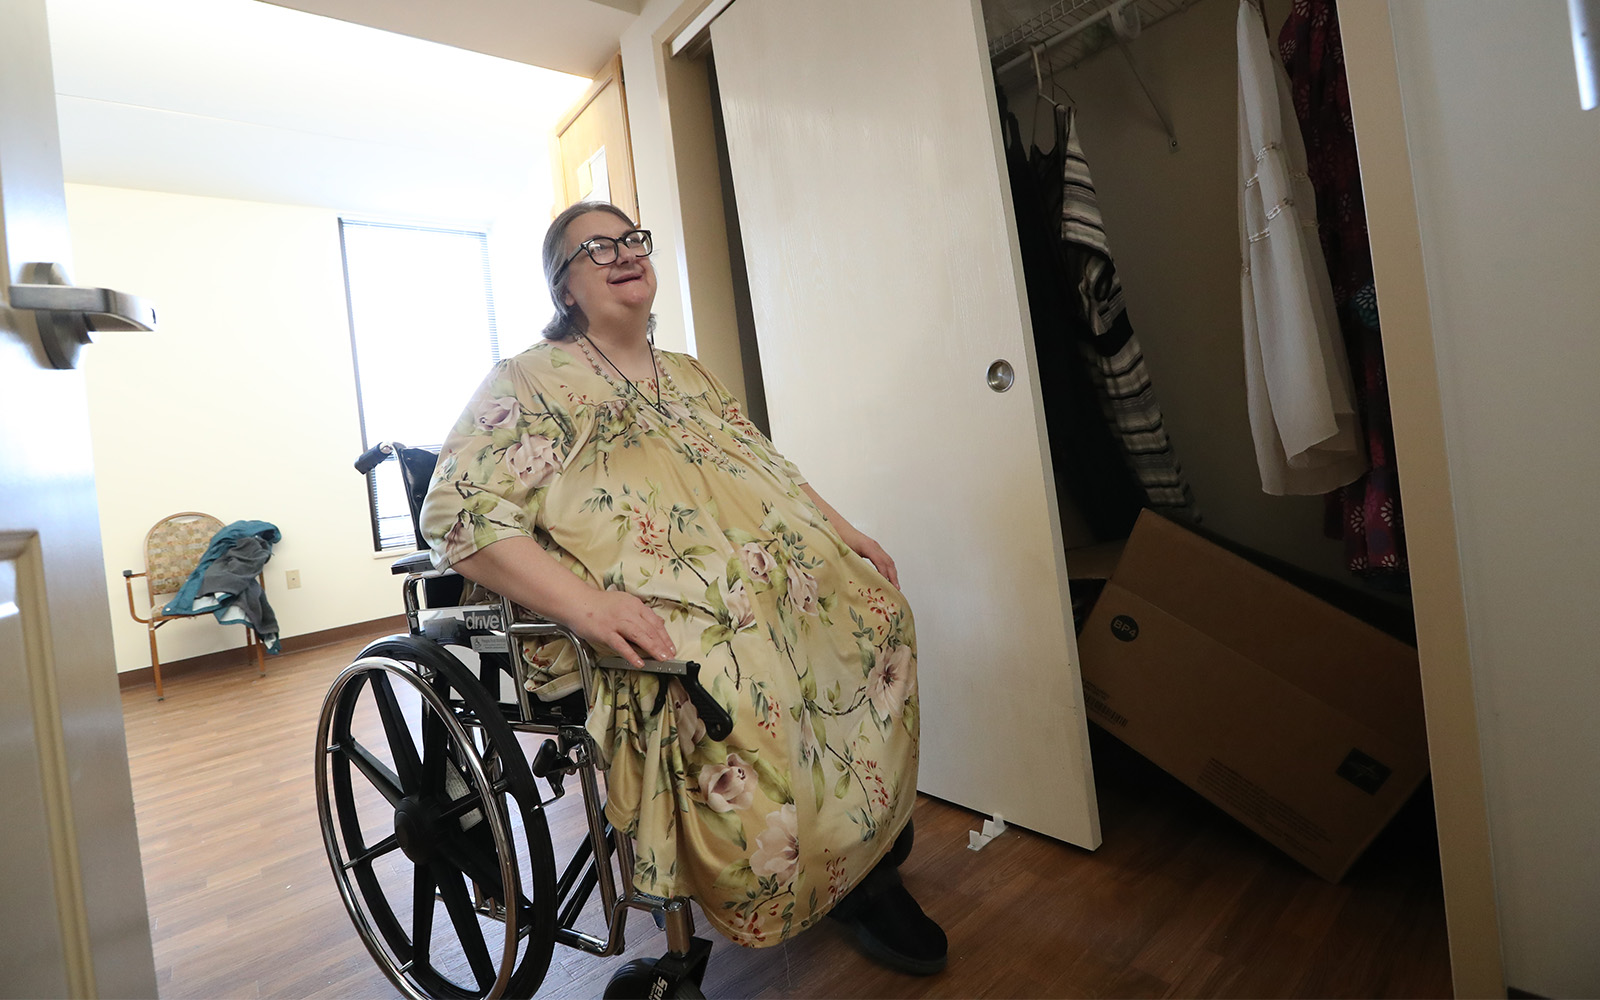 After 5 years in a nursing home, a Buffalo woman moves out